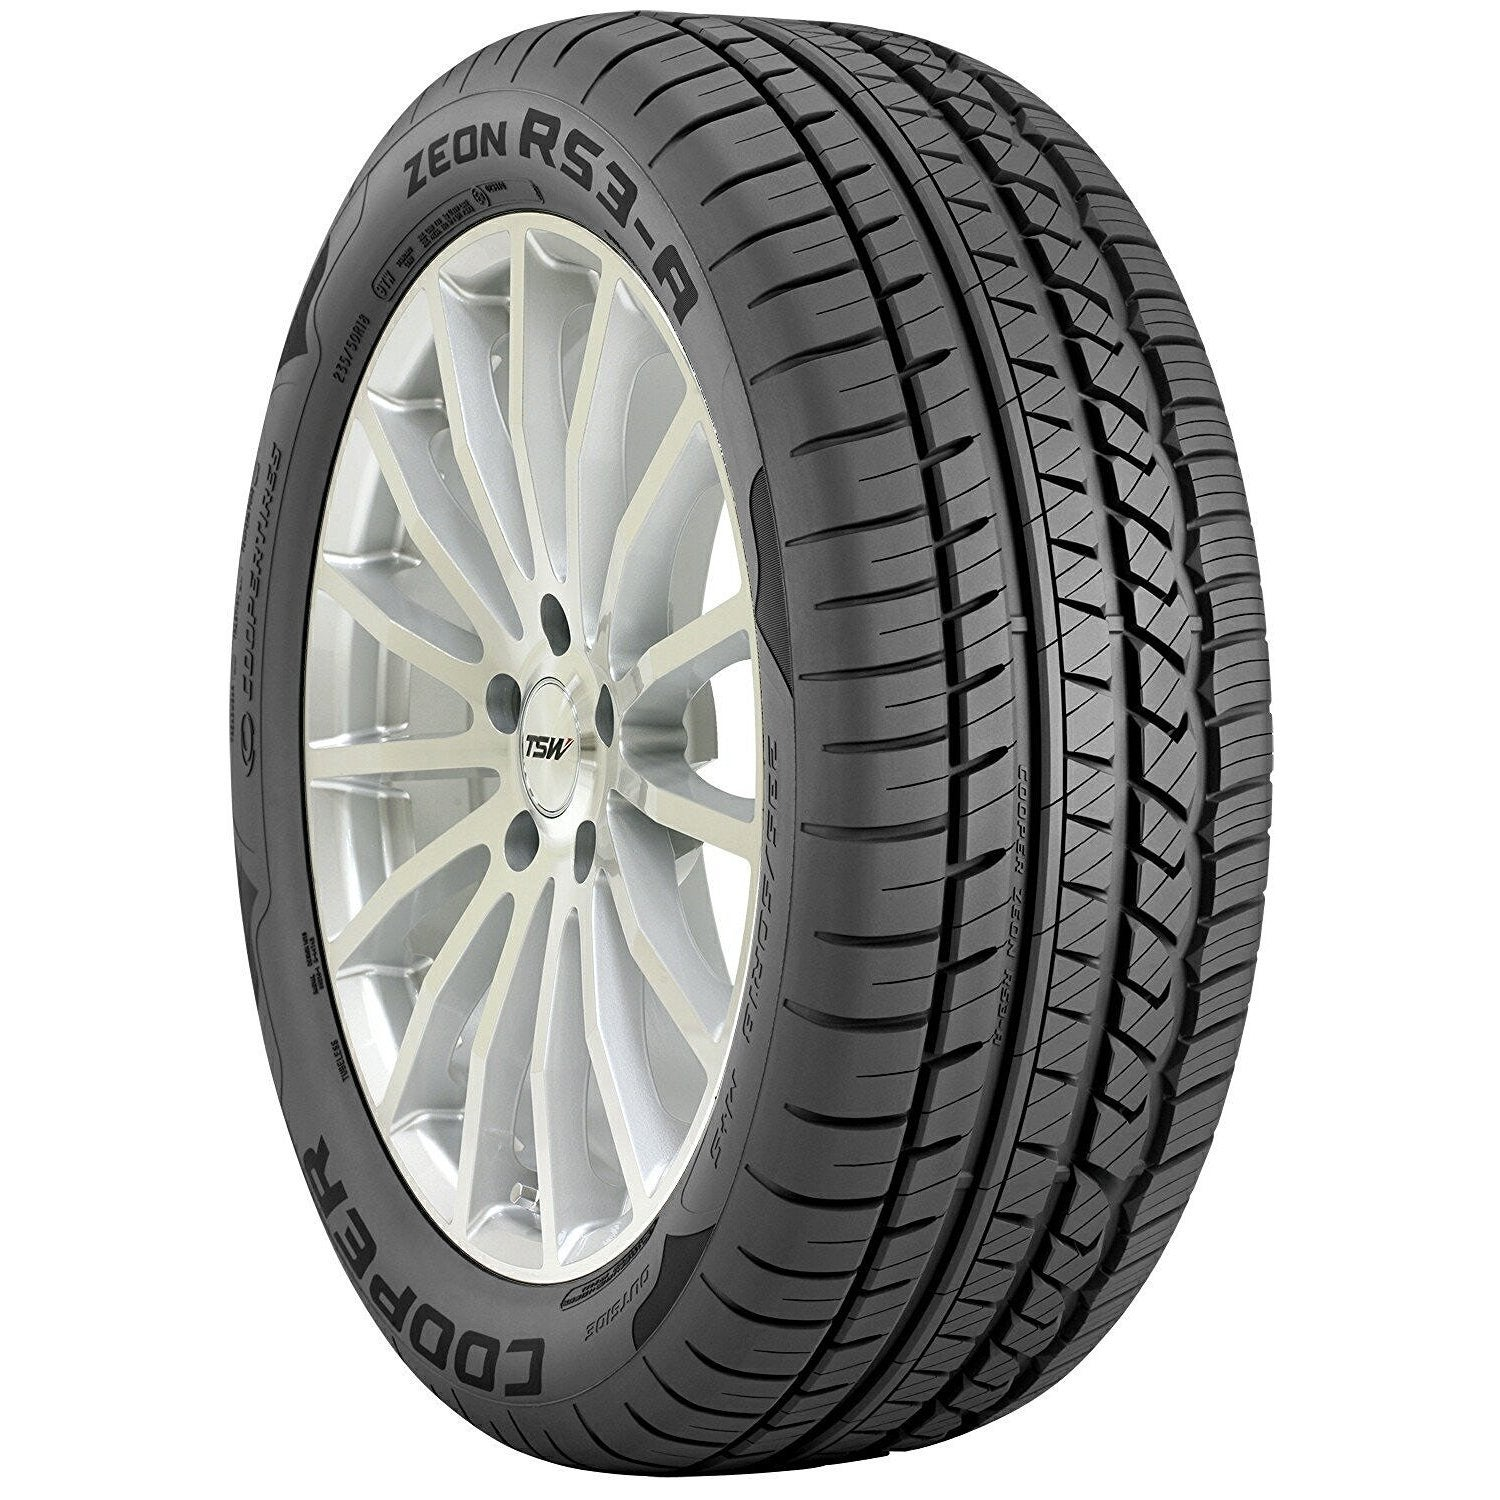 COOPER Zeon RS3-A All Season Performance Tire - 225/55R16...